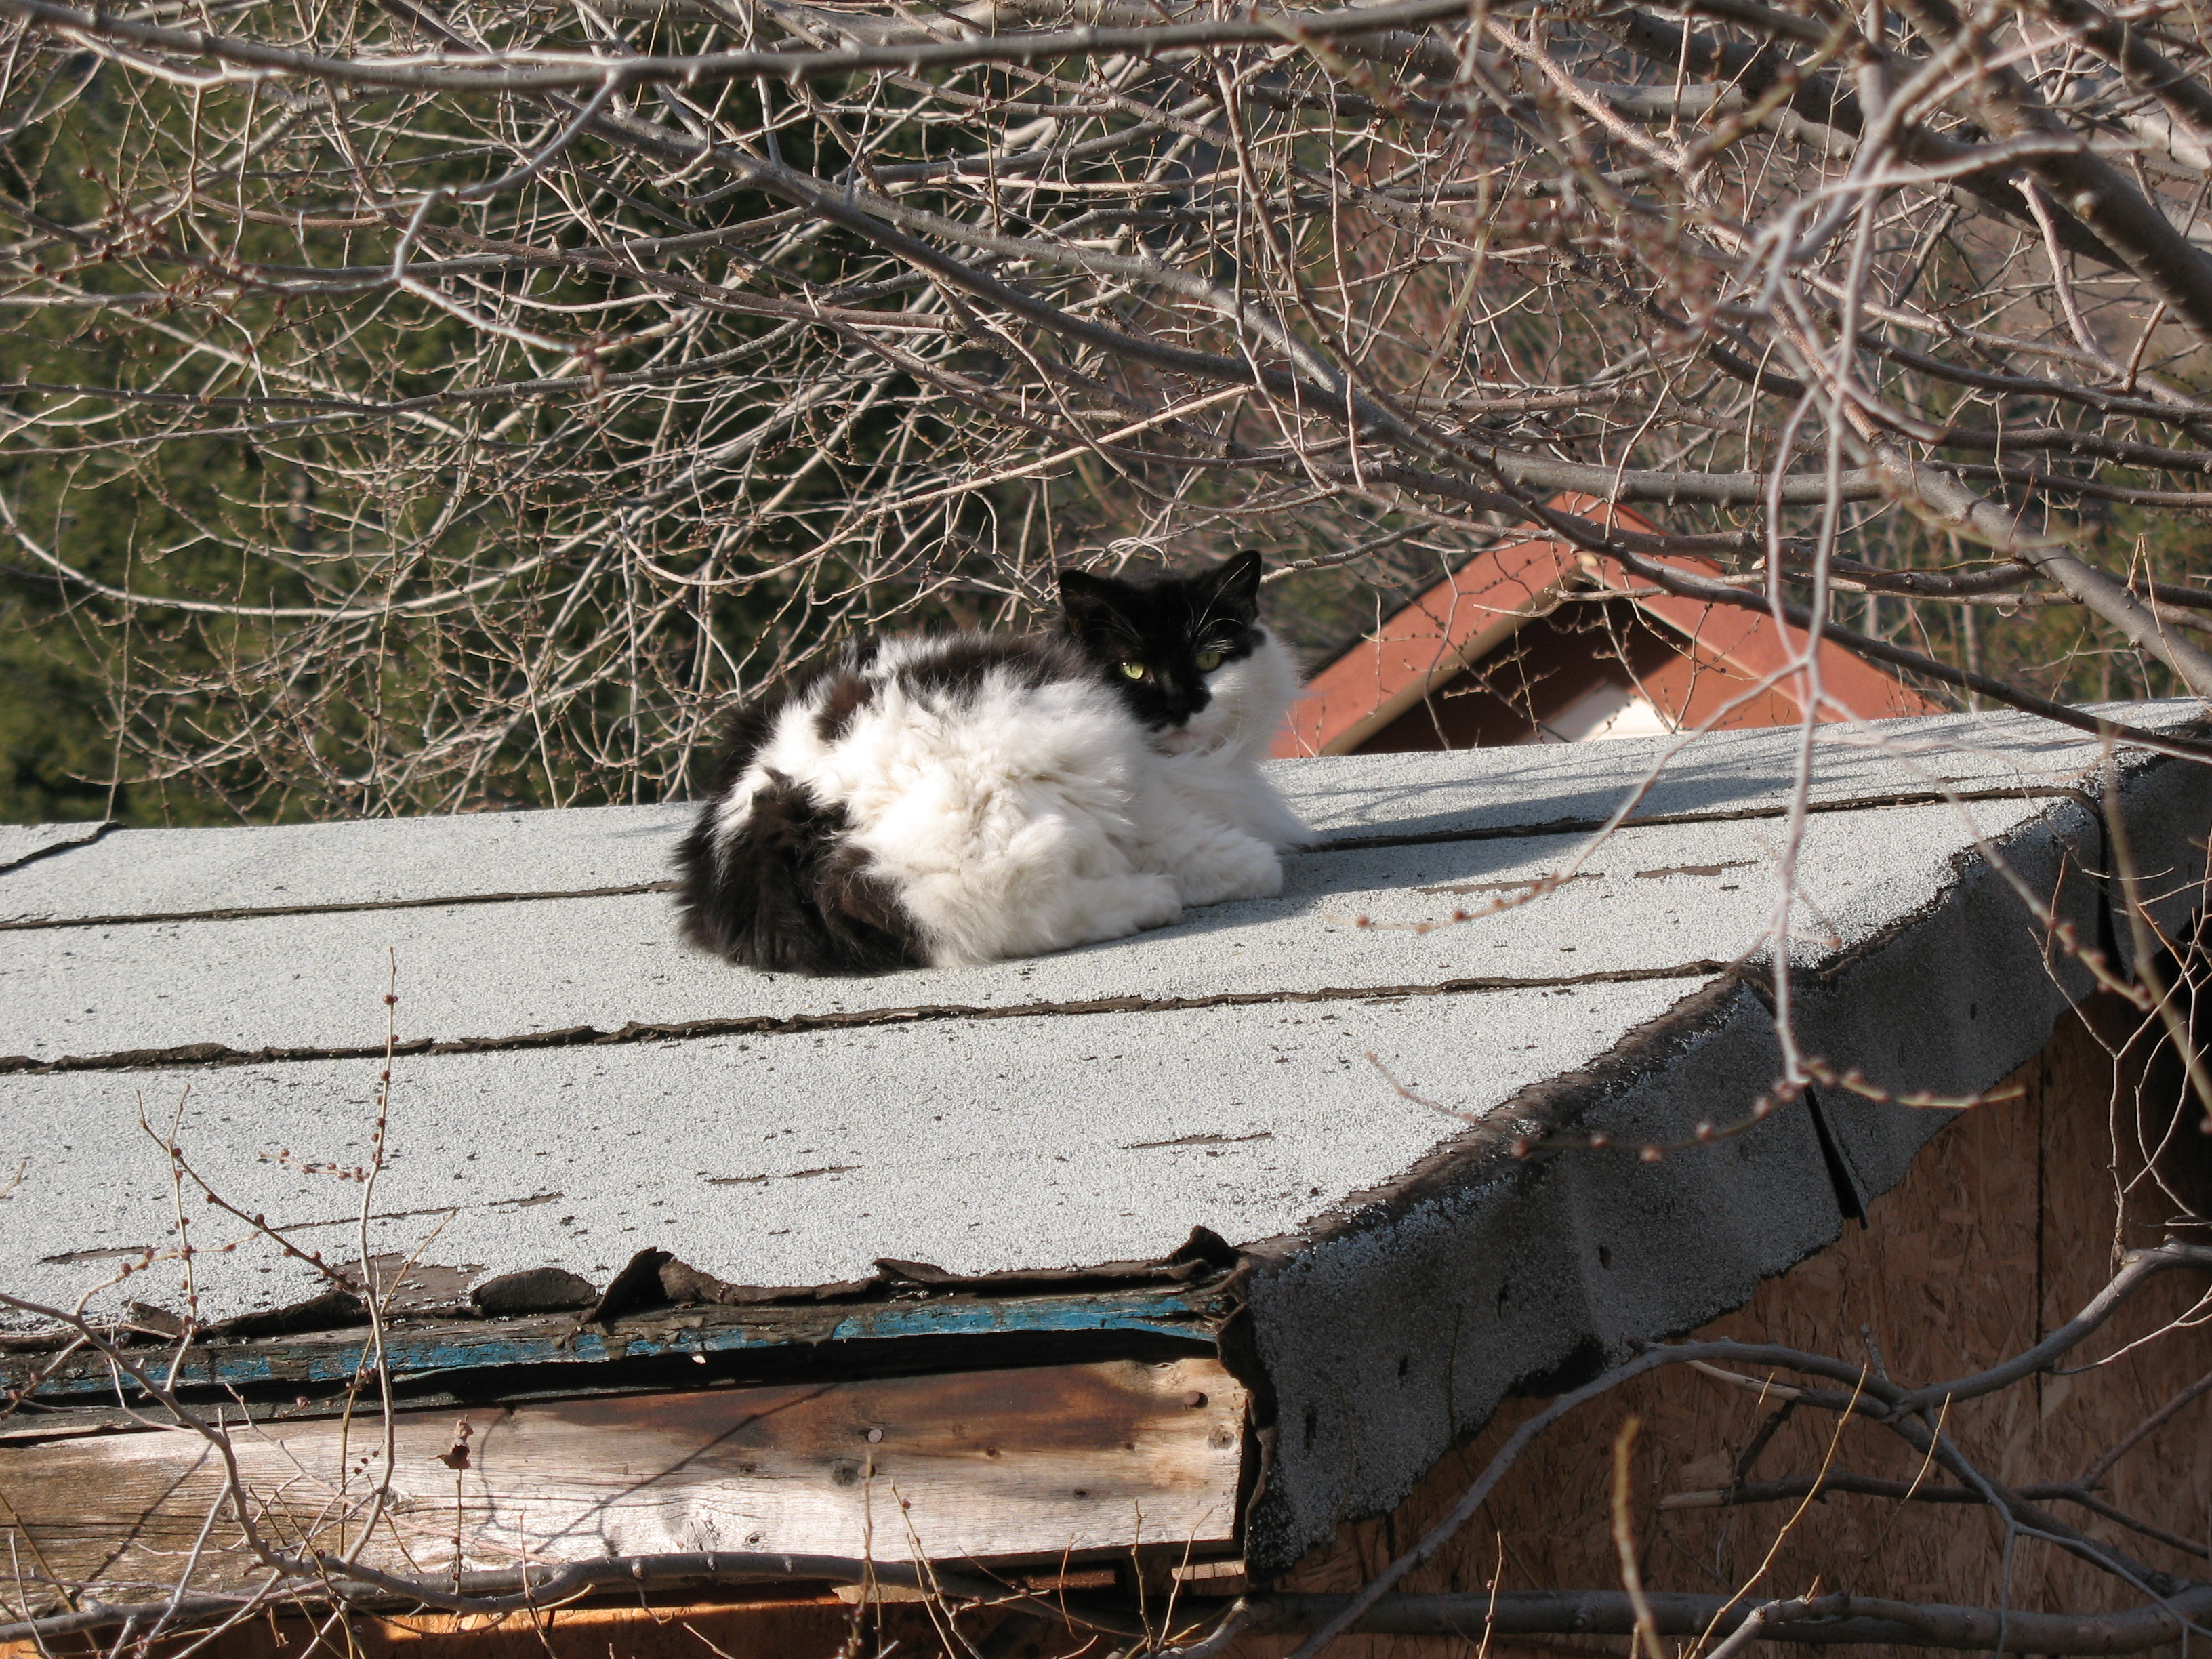 Cat On a Warm Roof